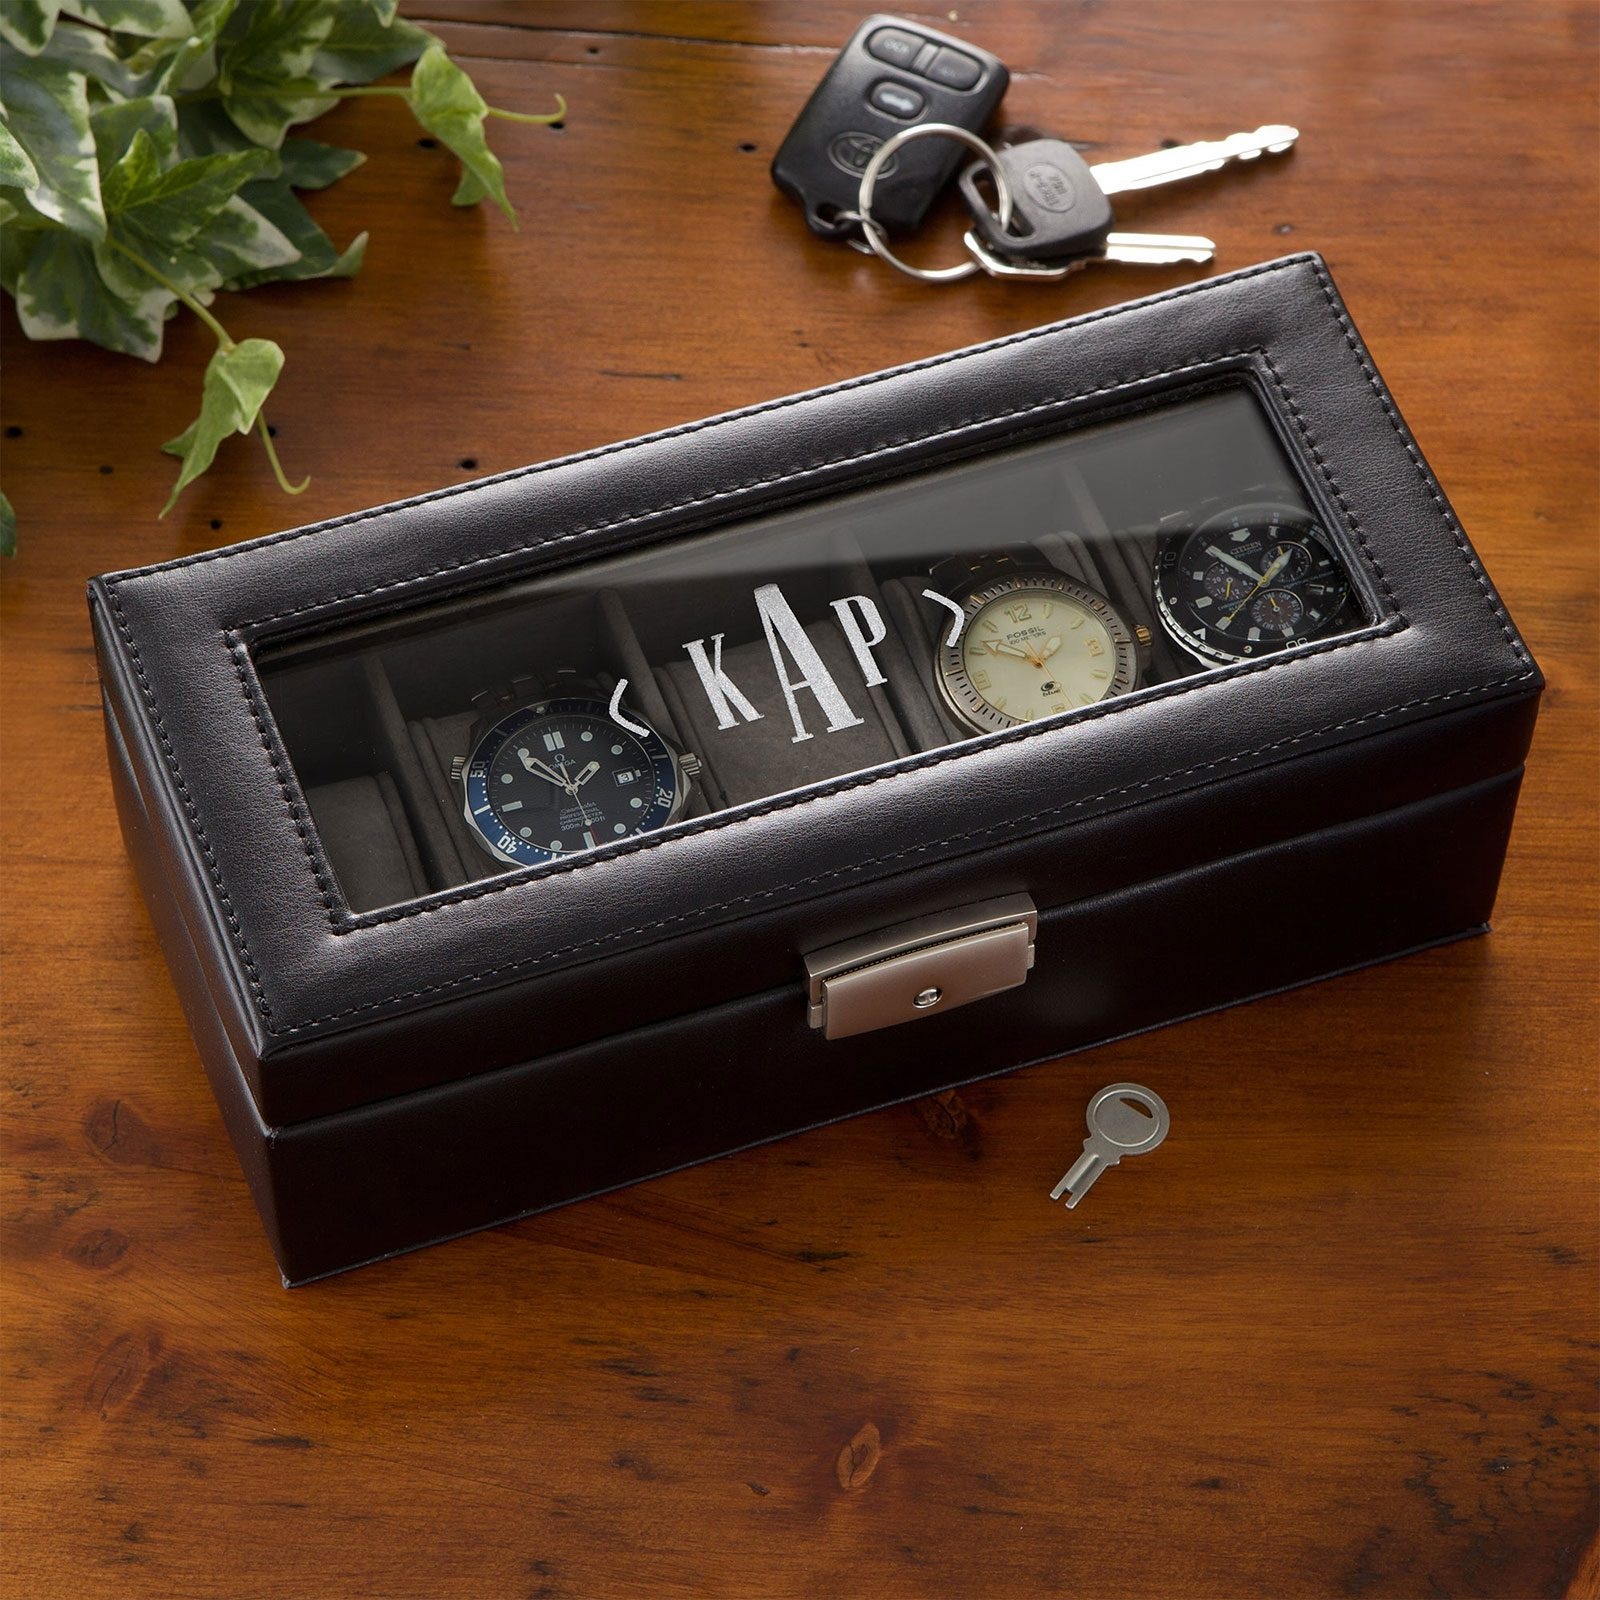 For the ever-punctual guy: Leather 5-Slot Personalized Watch Box